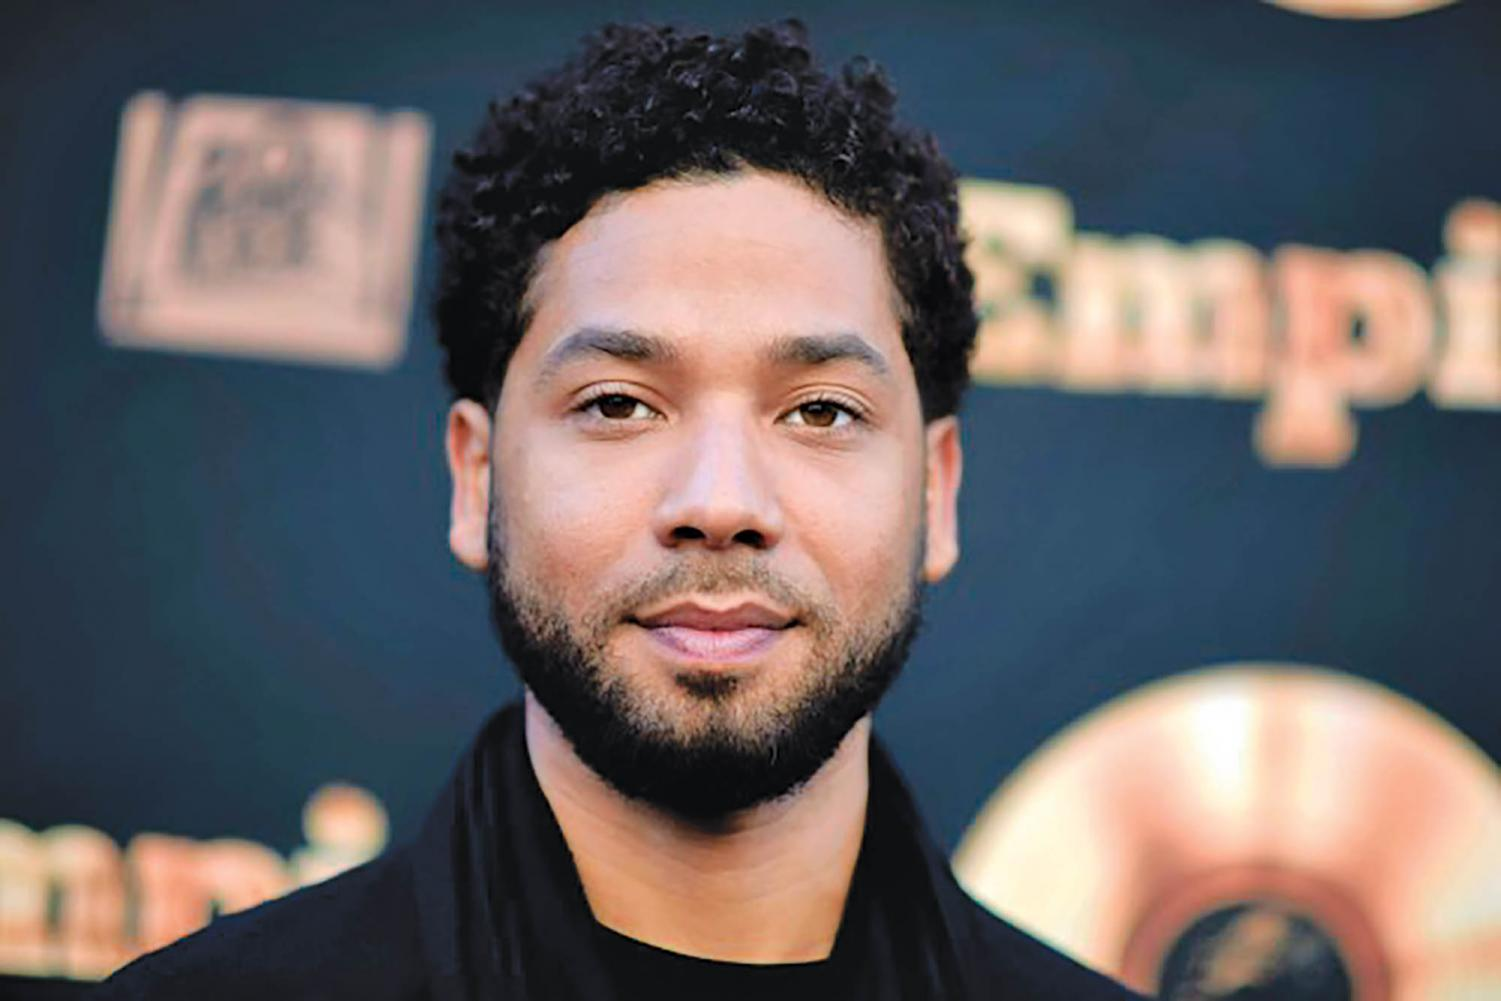 Smollet apologized to the 'Empire' cast for any embarrassment but insisted that he is innocent on Feb. 21.